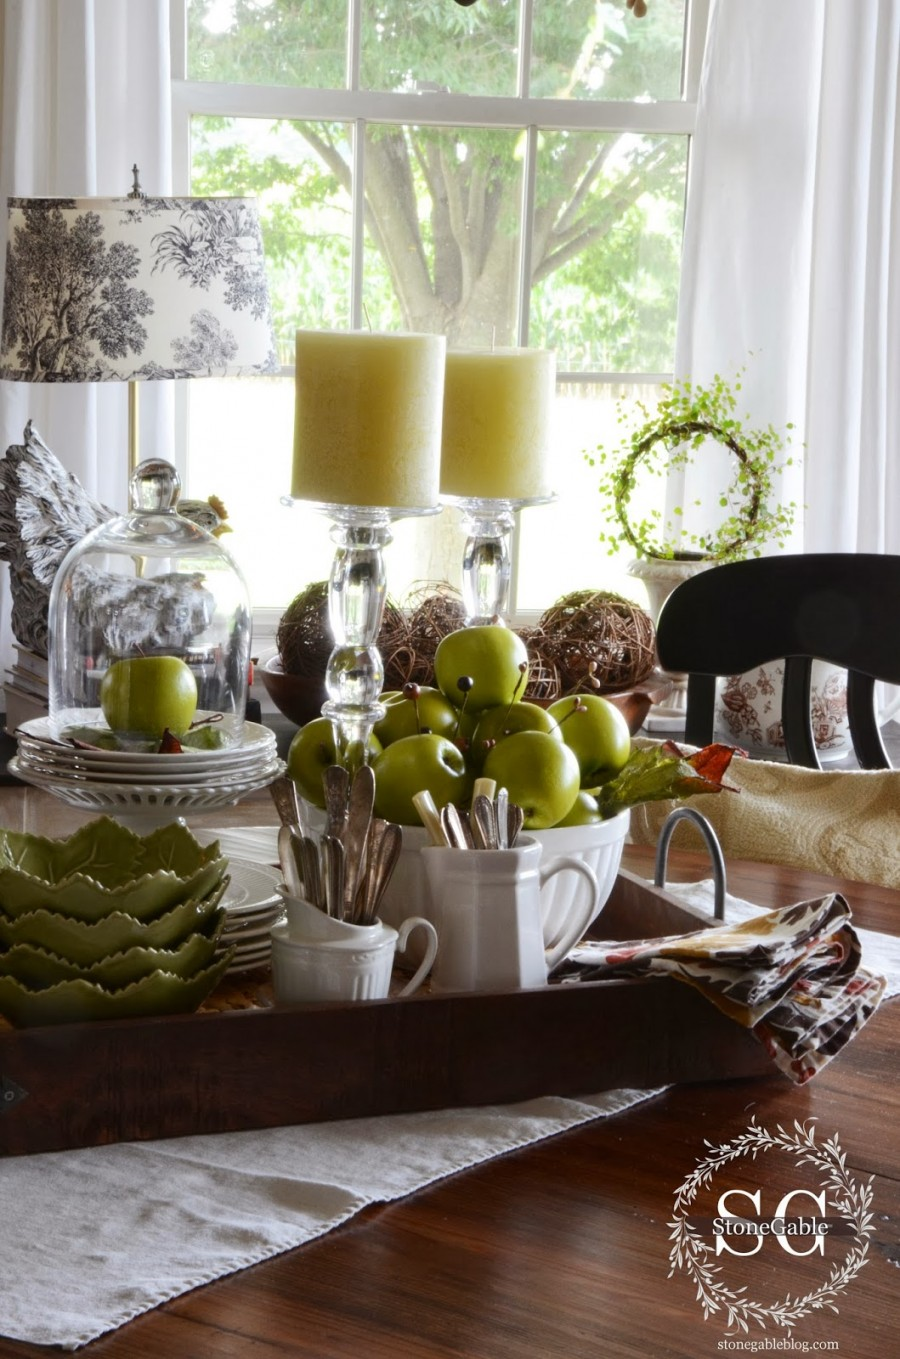 6 Tips For Creating A Kitchen Table Vignette